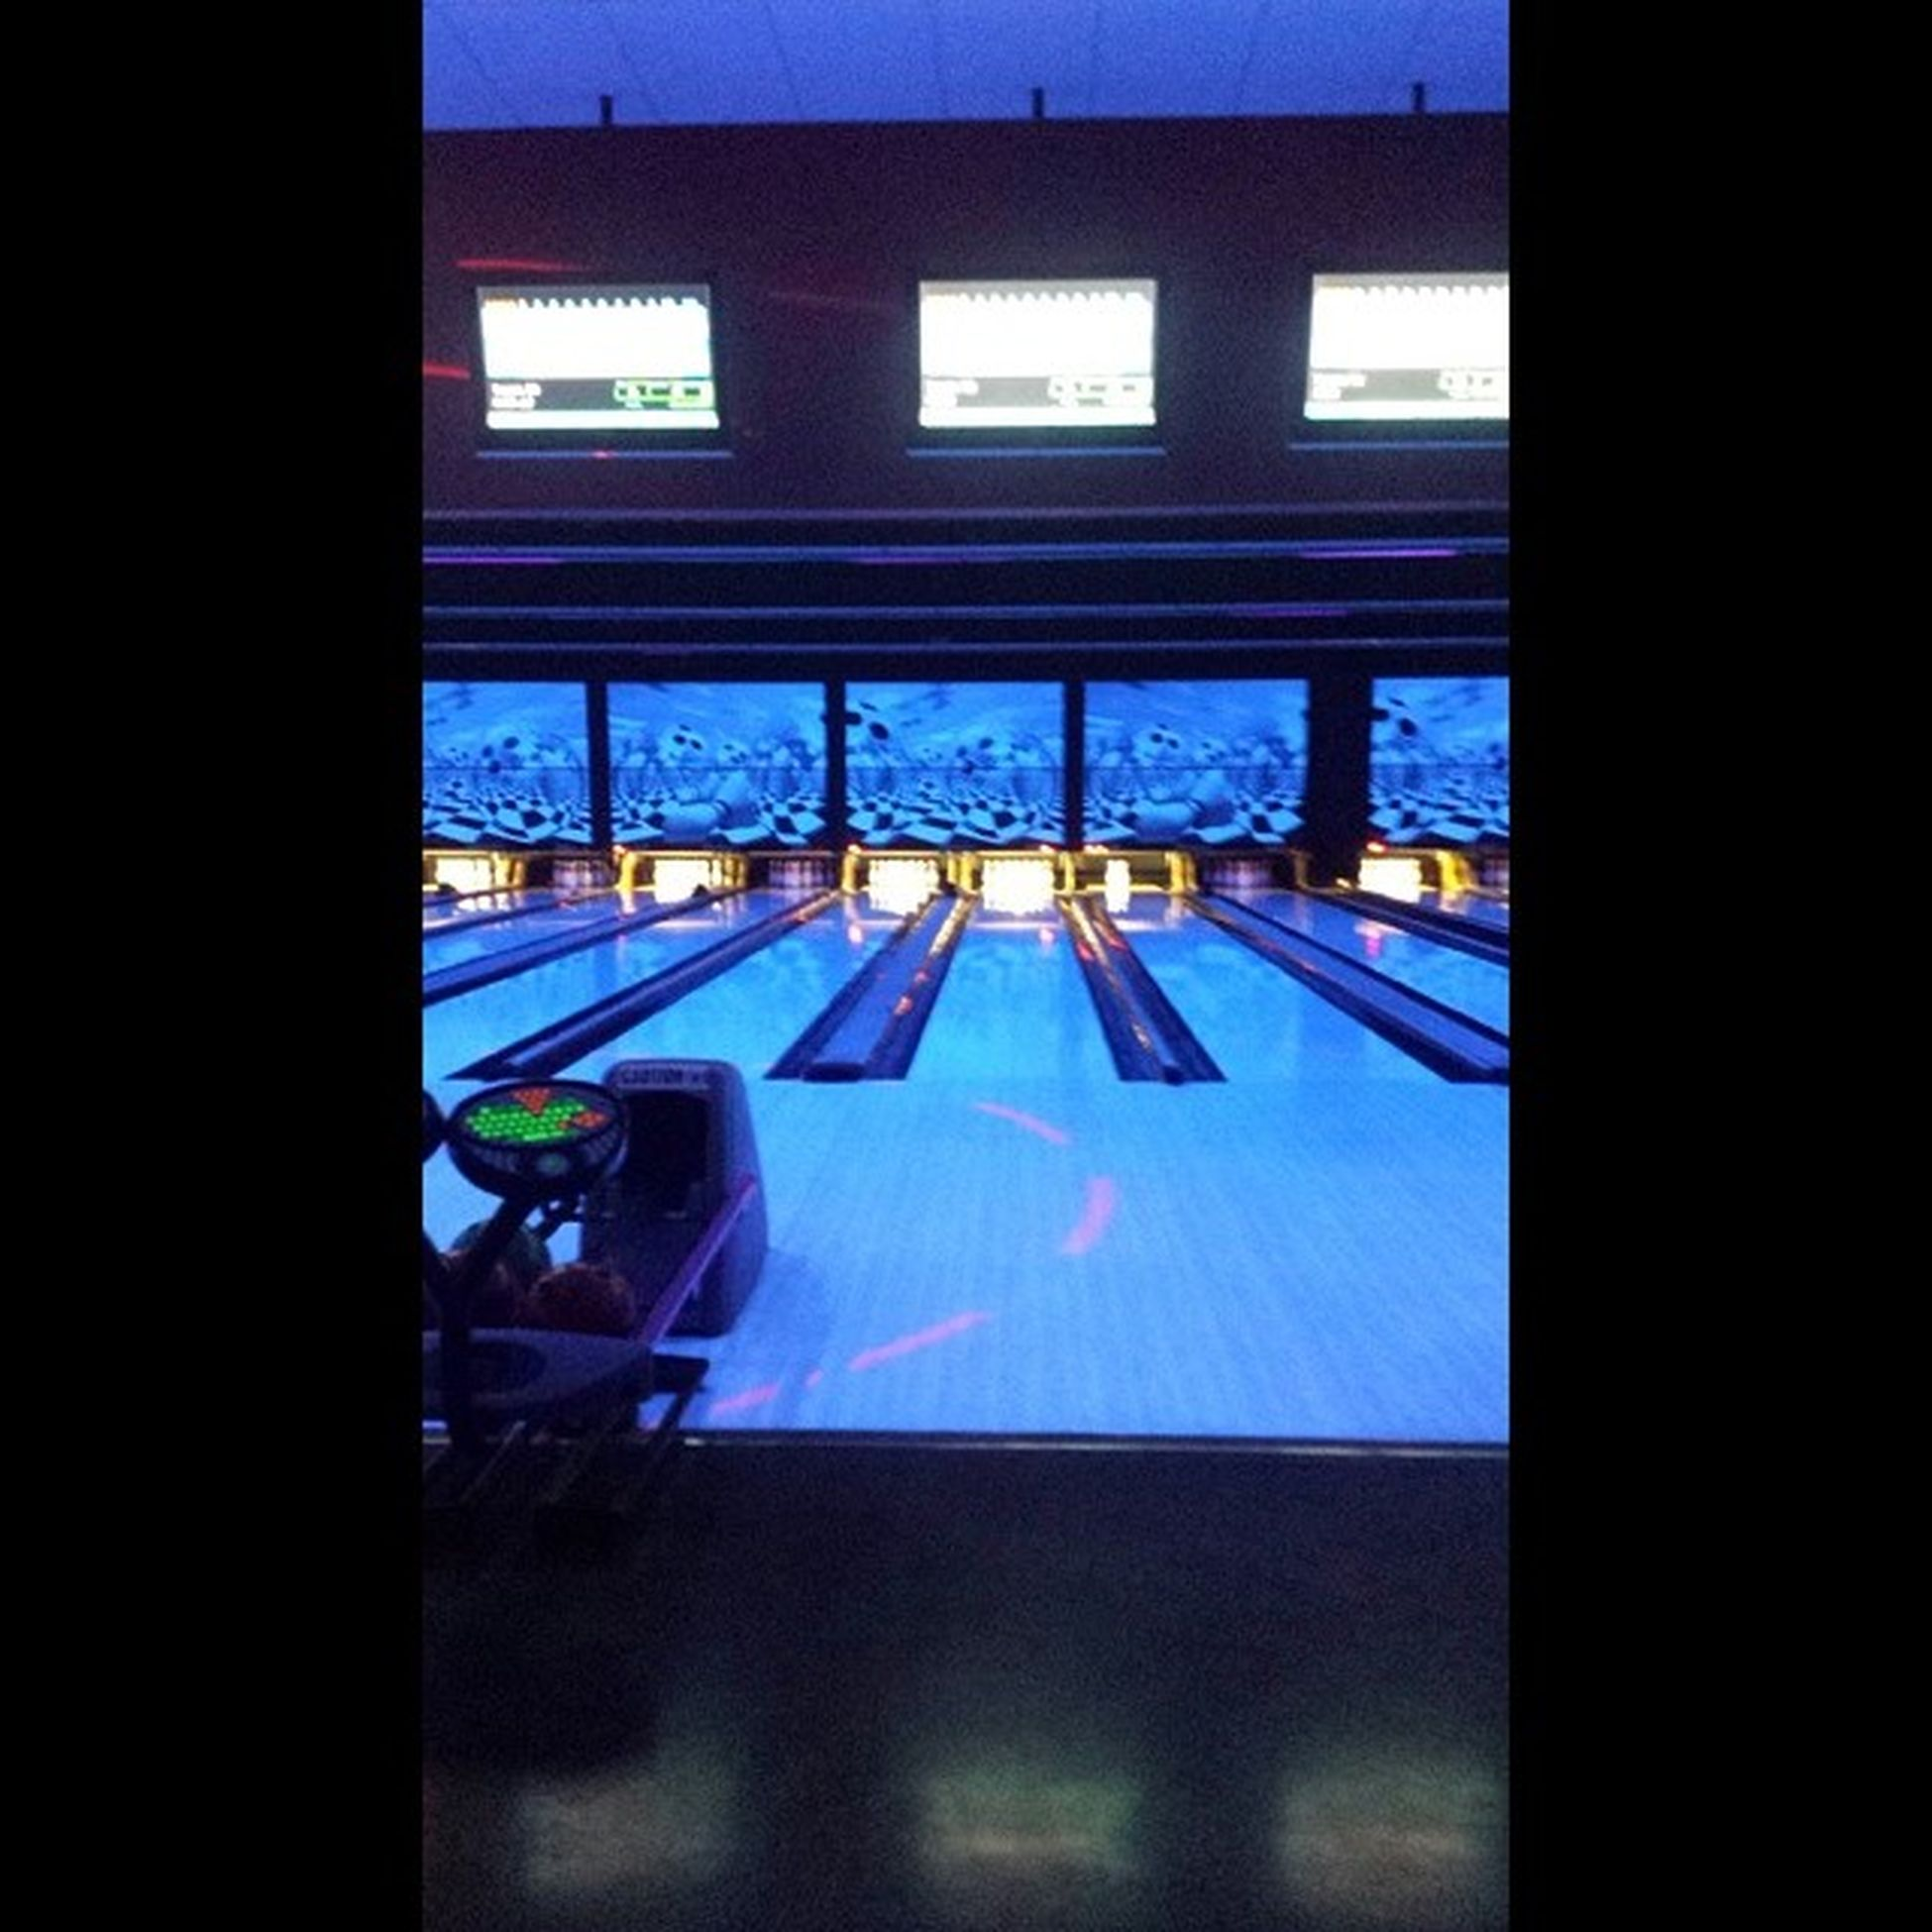 A fun night getting my ass whooped by bri. Love spending time with you @briegiese. You make me so happy. <3 your amazing. Bowling Glowbowling Happy Funnight rideordiechick